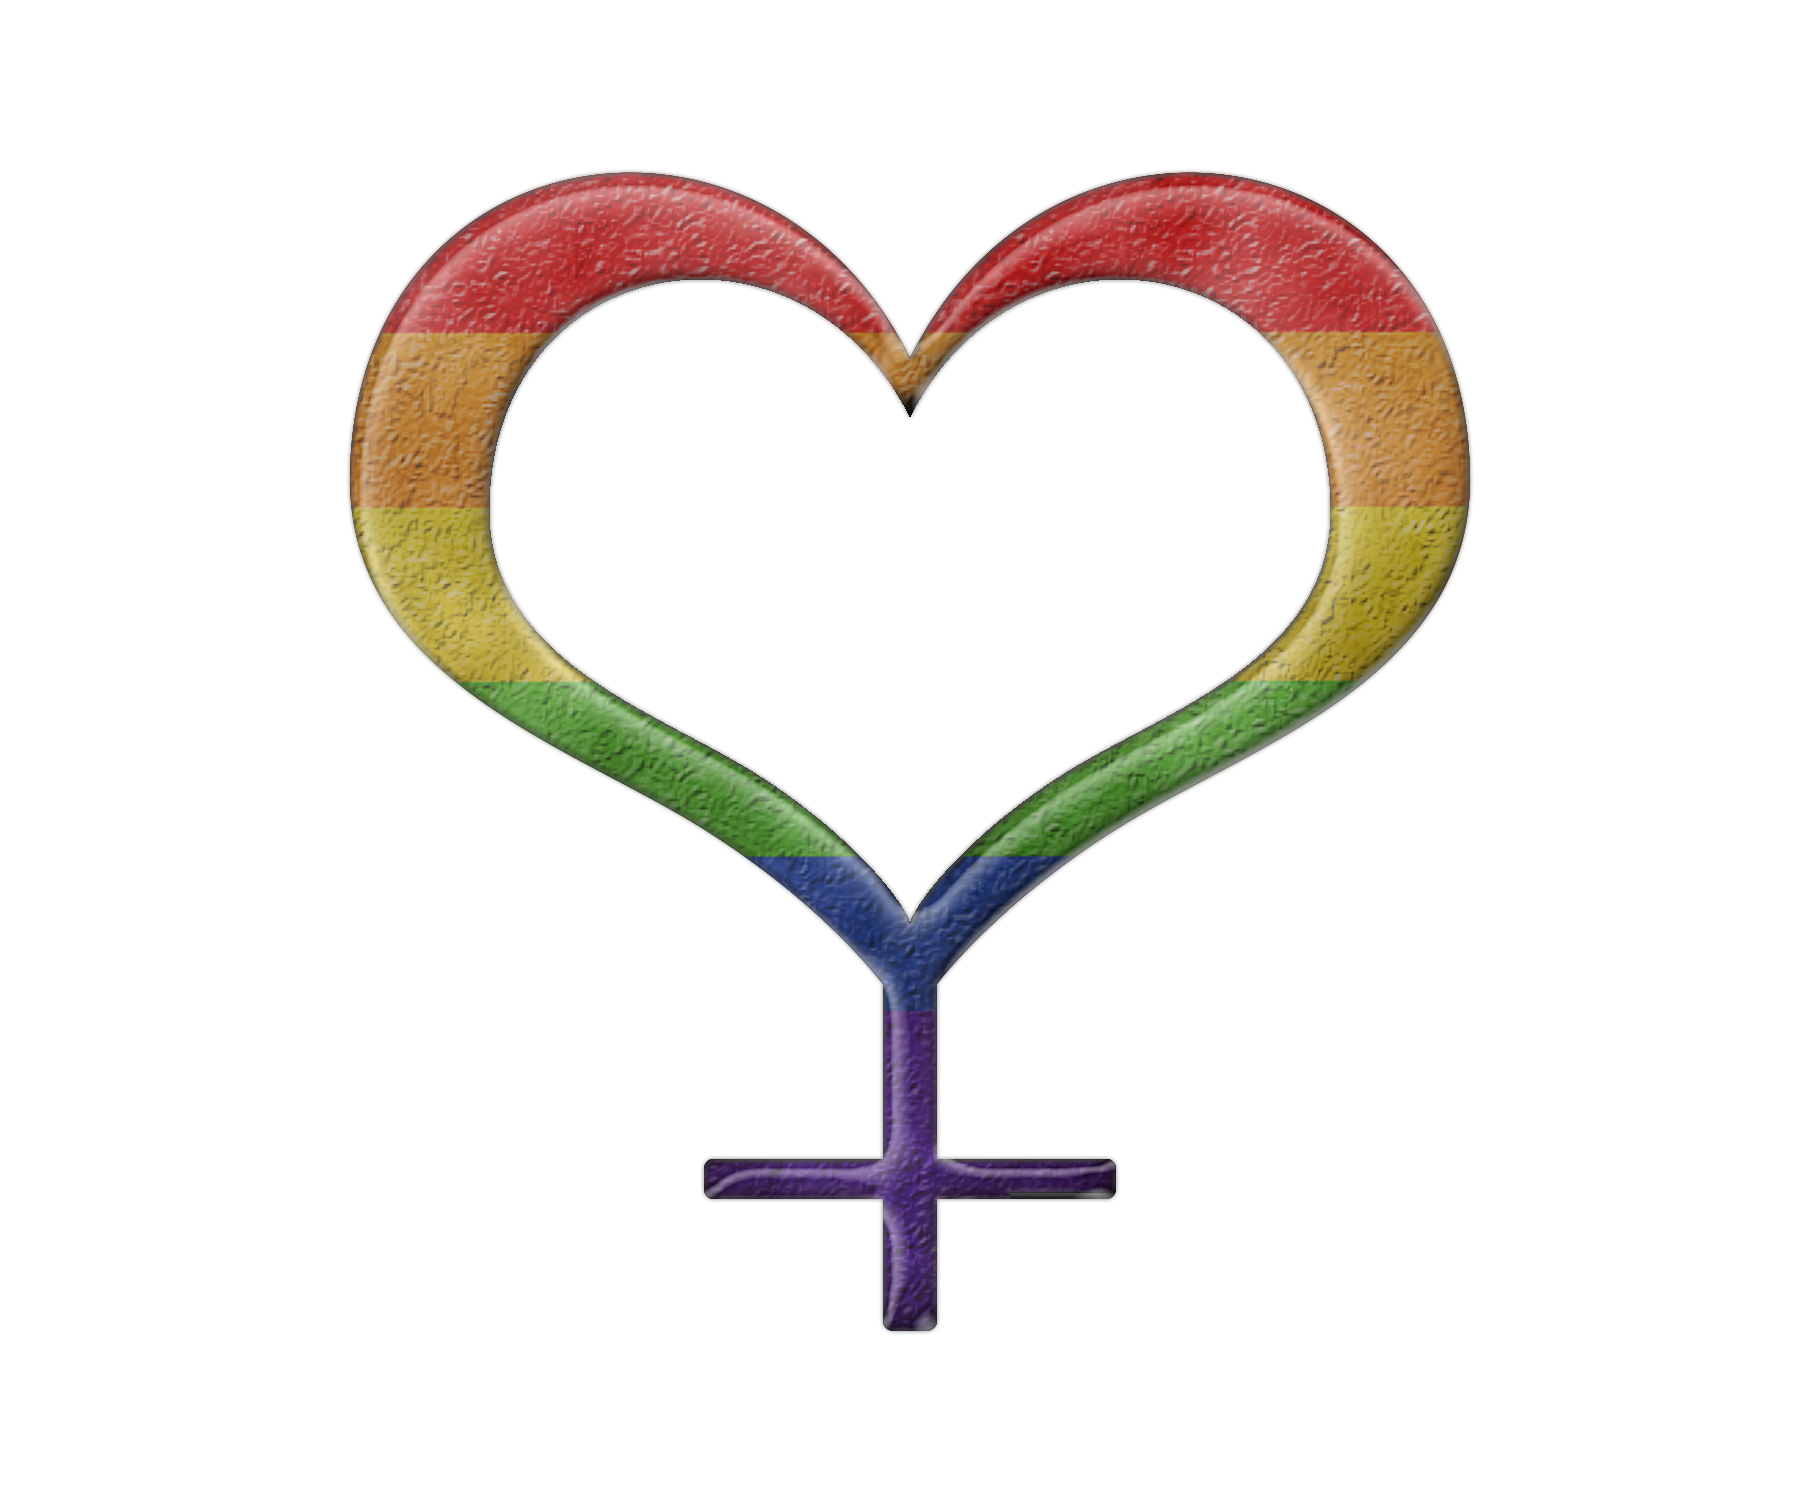 Lesbian pride rainbow colored. Heartbeat clipart heart tattoo design